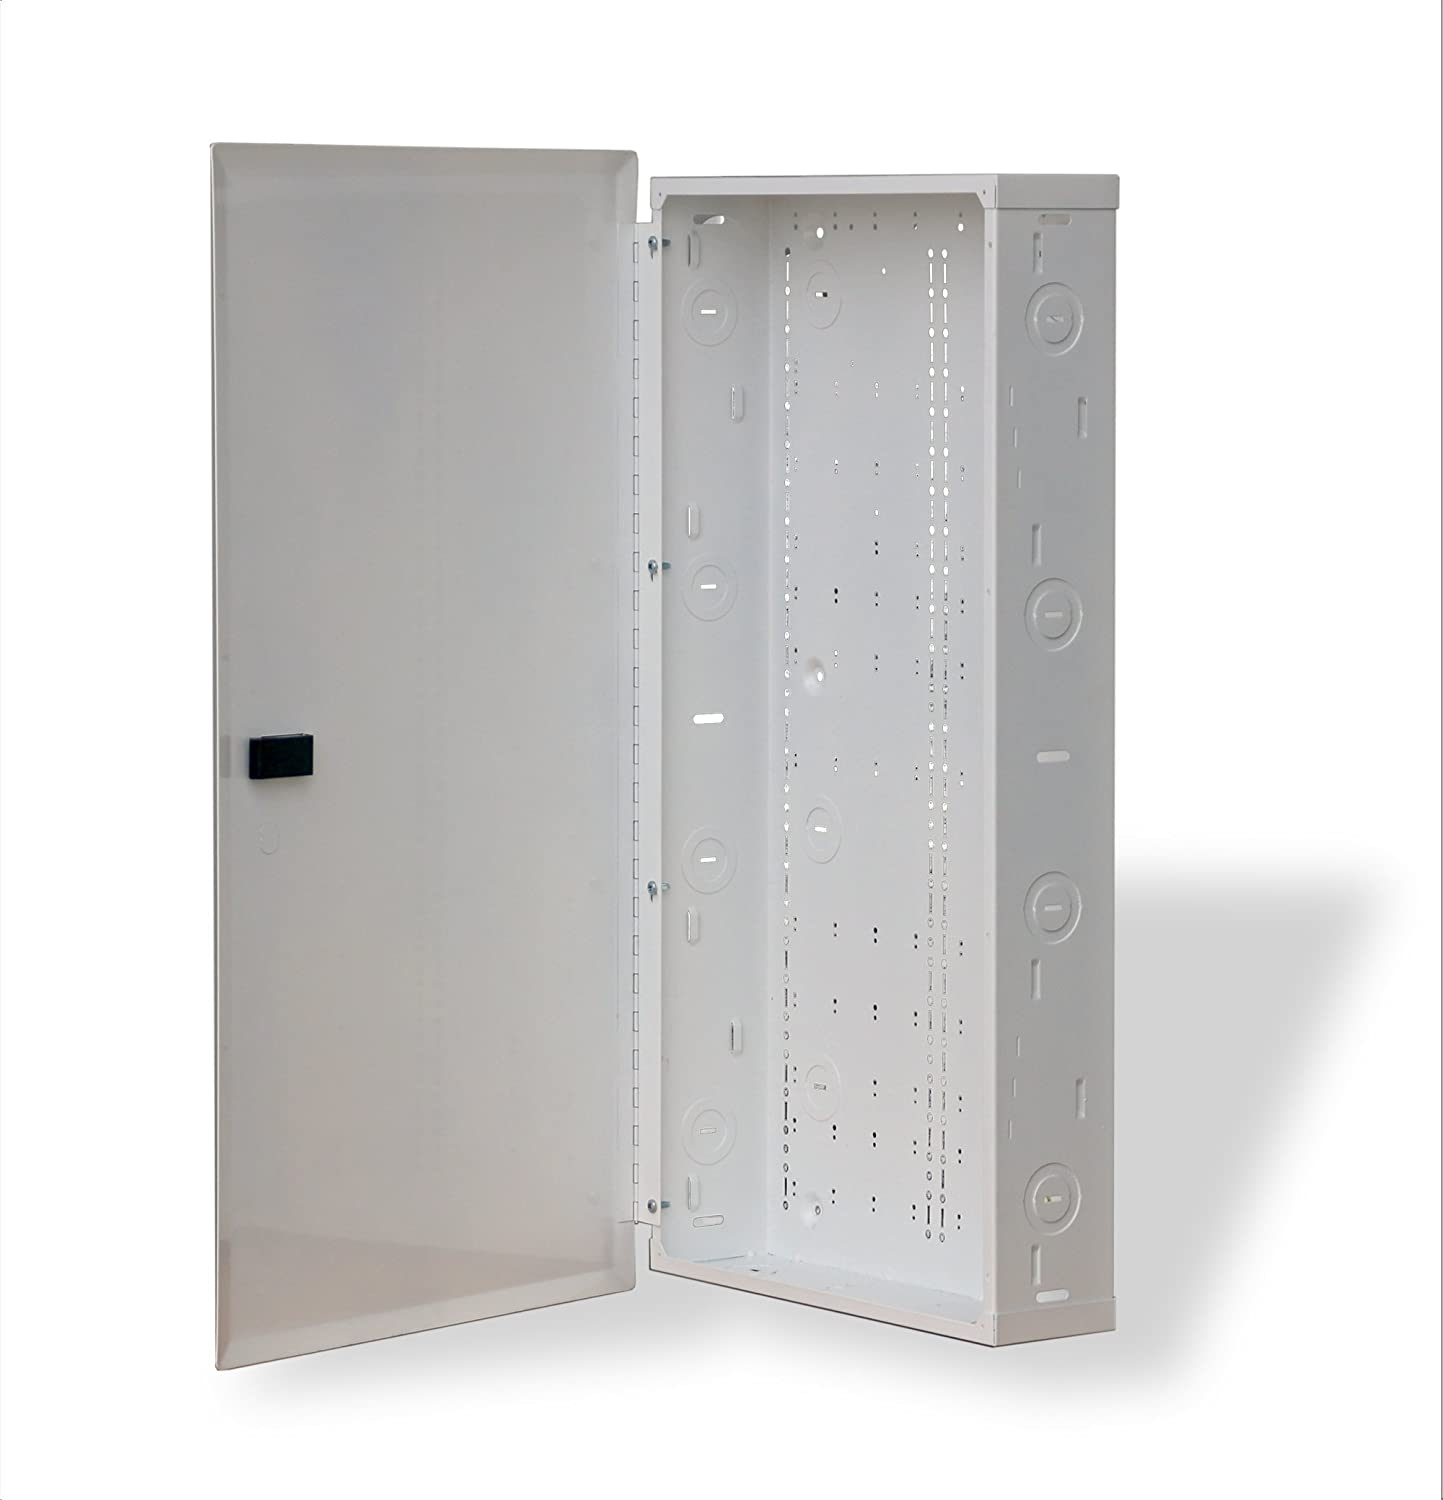 Benner Nawman 14284 Mmh Structured Wiring Cabinets 14 1 4 Inch X 28 Enclosure Accessories White Tool